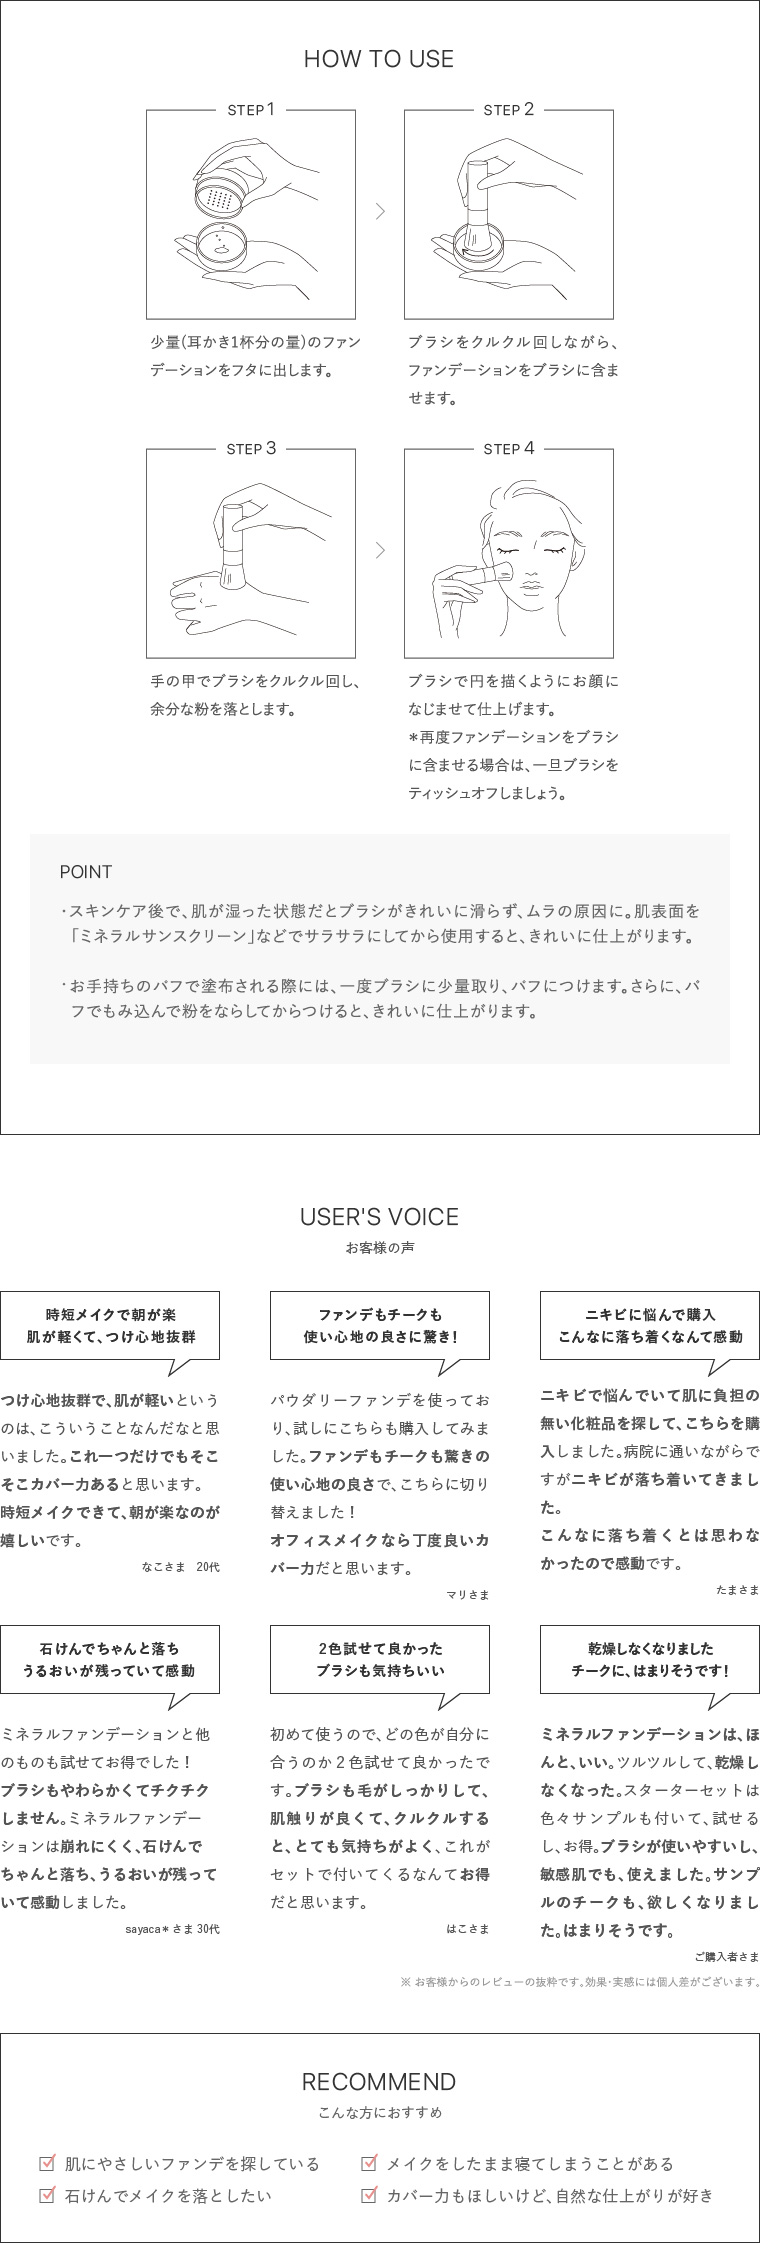 HOW TO USE、VOICE、RECOMMEND